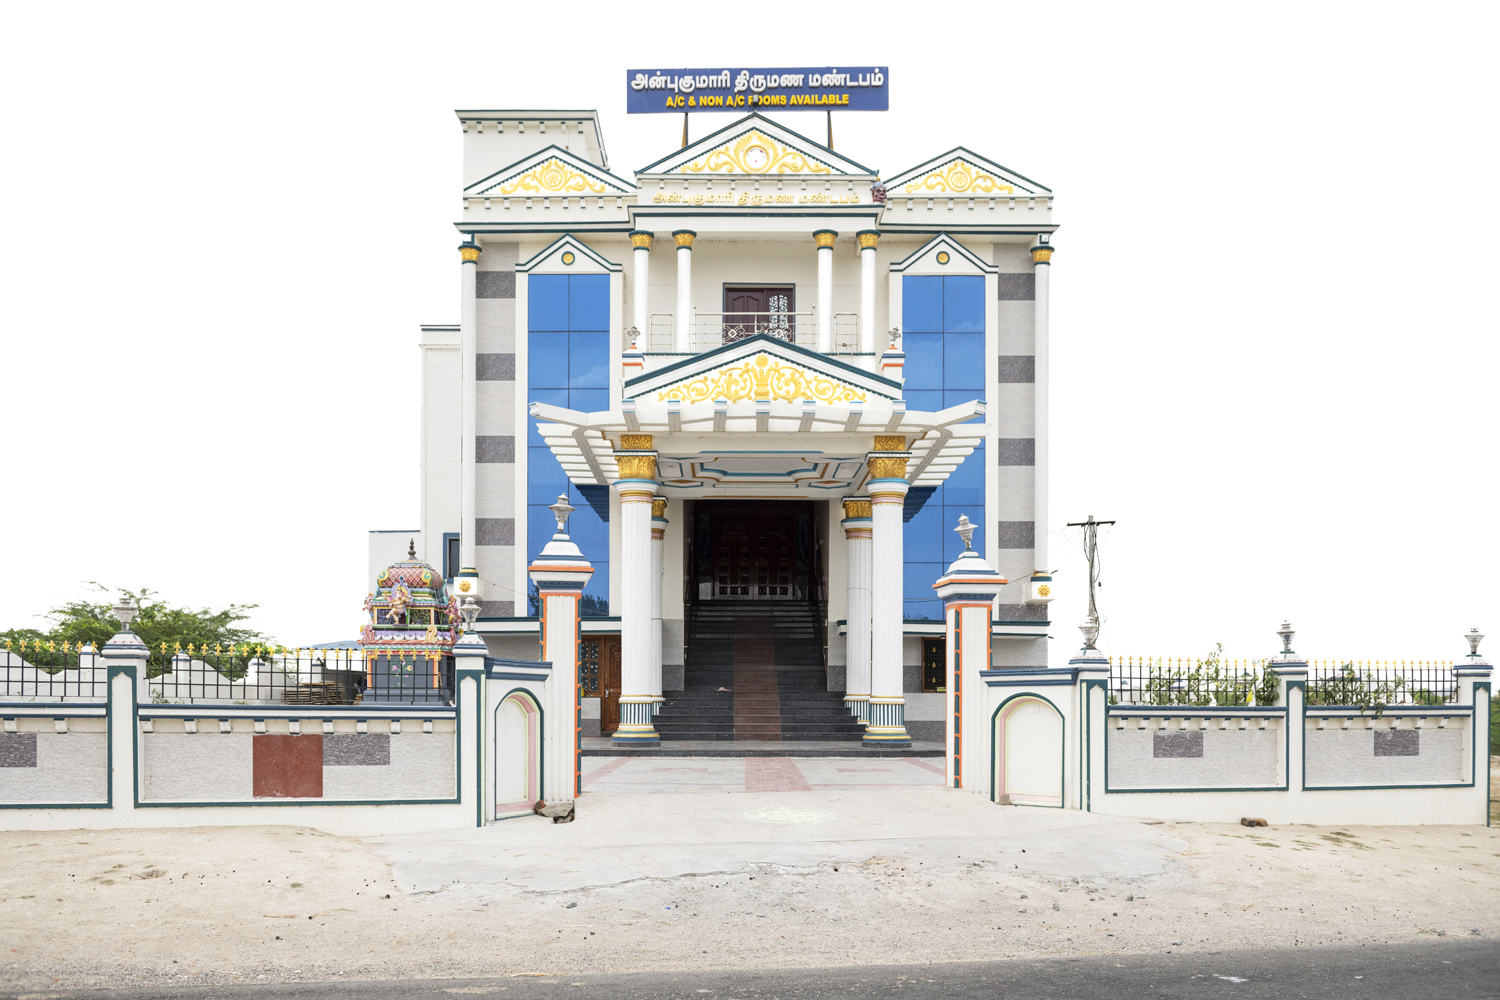 Manikandan and Santhi, brother and sister are two of the builders of this events hall. Free Architecture, on the road from Tiruvannamalai to Pondicherry, Tamilnadu, India